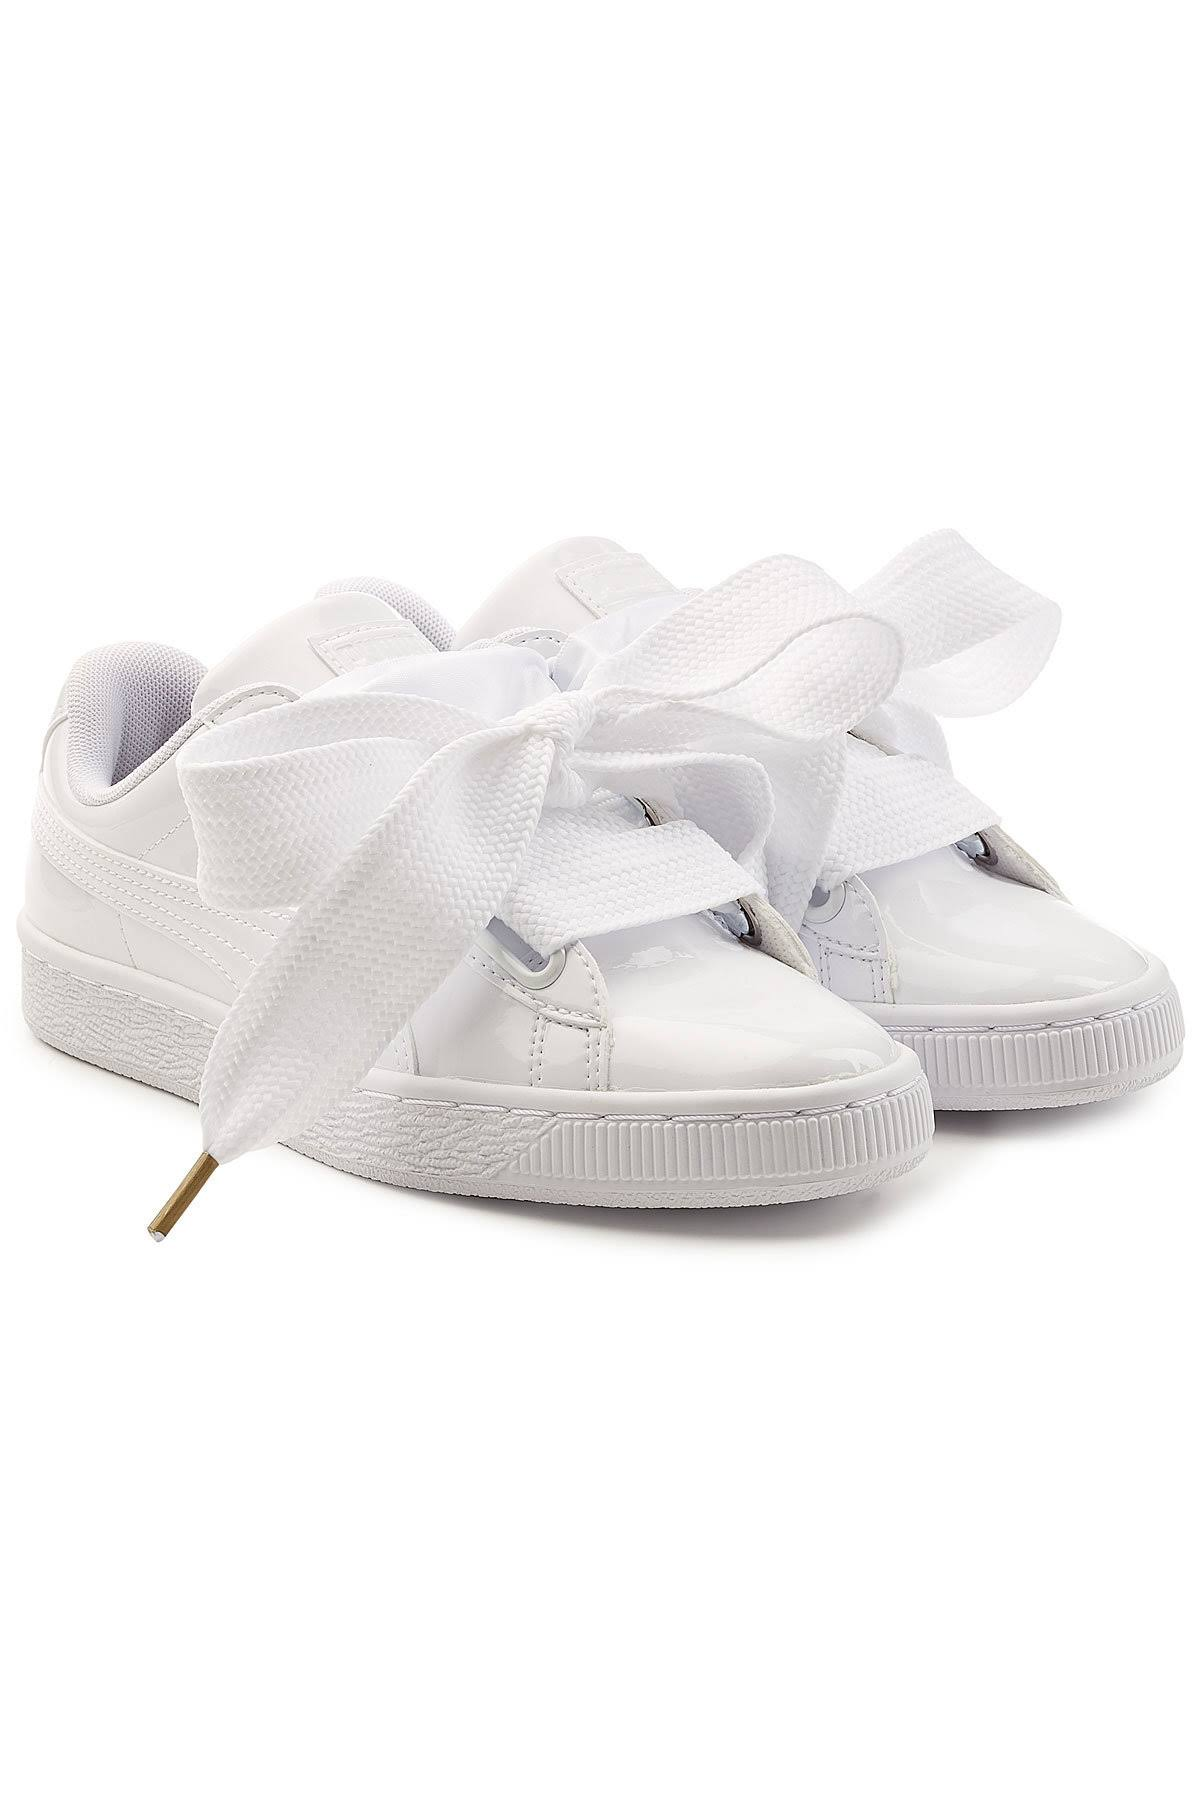 42 Eu Puma Select Patent White Basket Heart x6afvX6